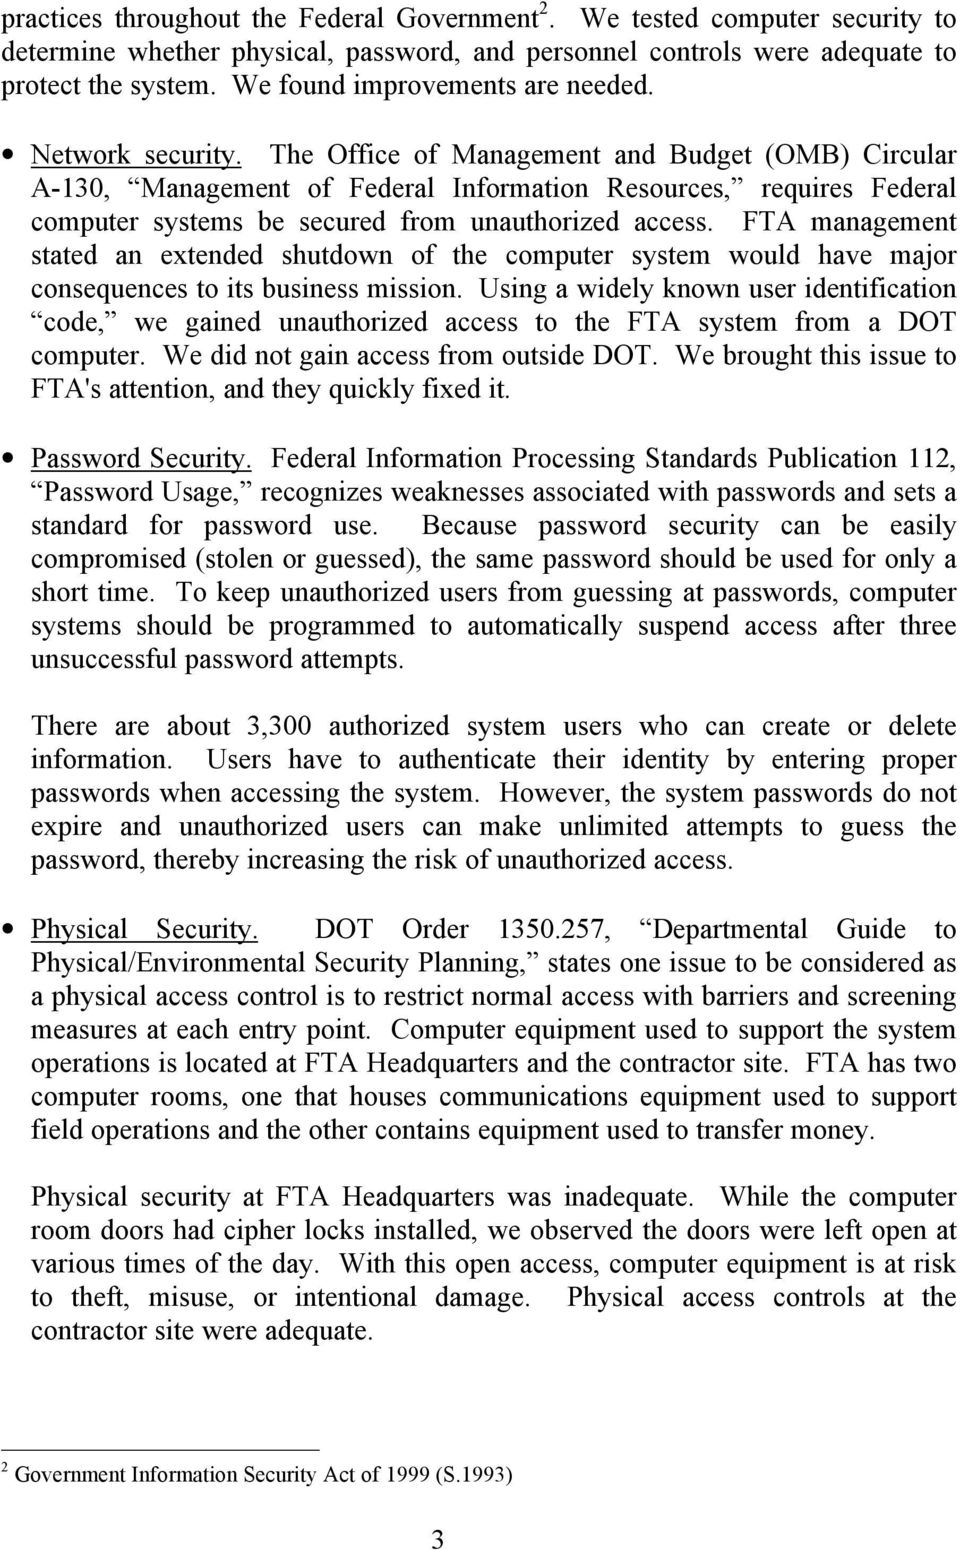 The Office of Management and Budget (OMB) Circular A-130, Management of Federal Information Resources, requires Federal computer systems be secured from unauthorized access.